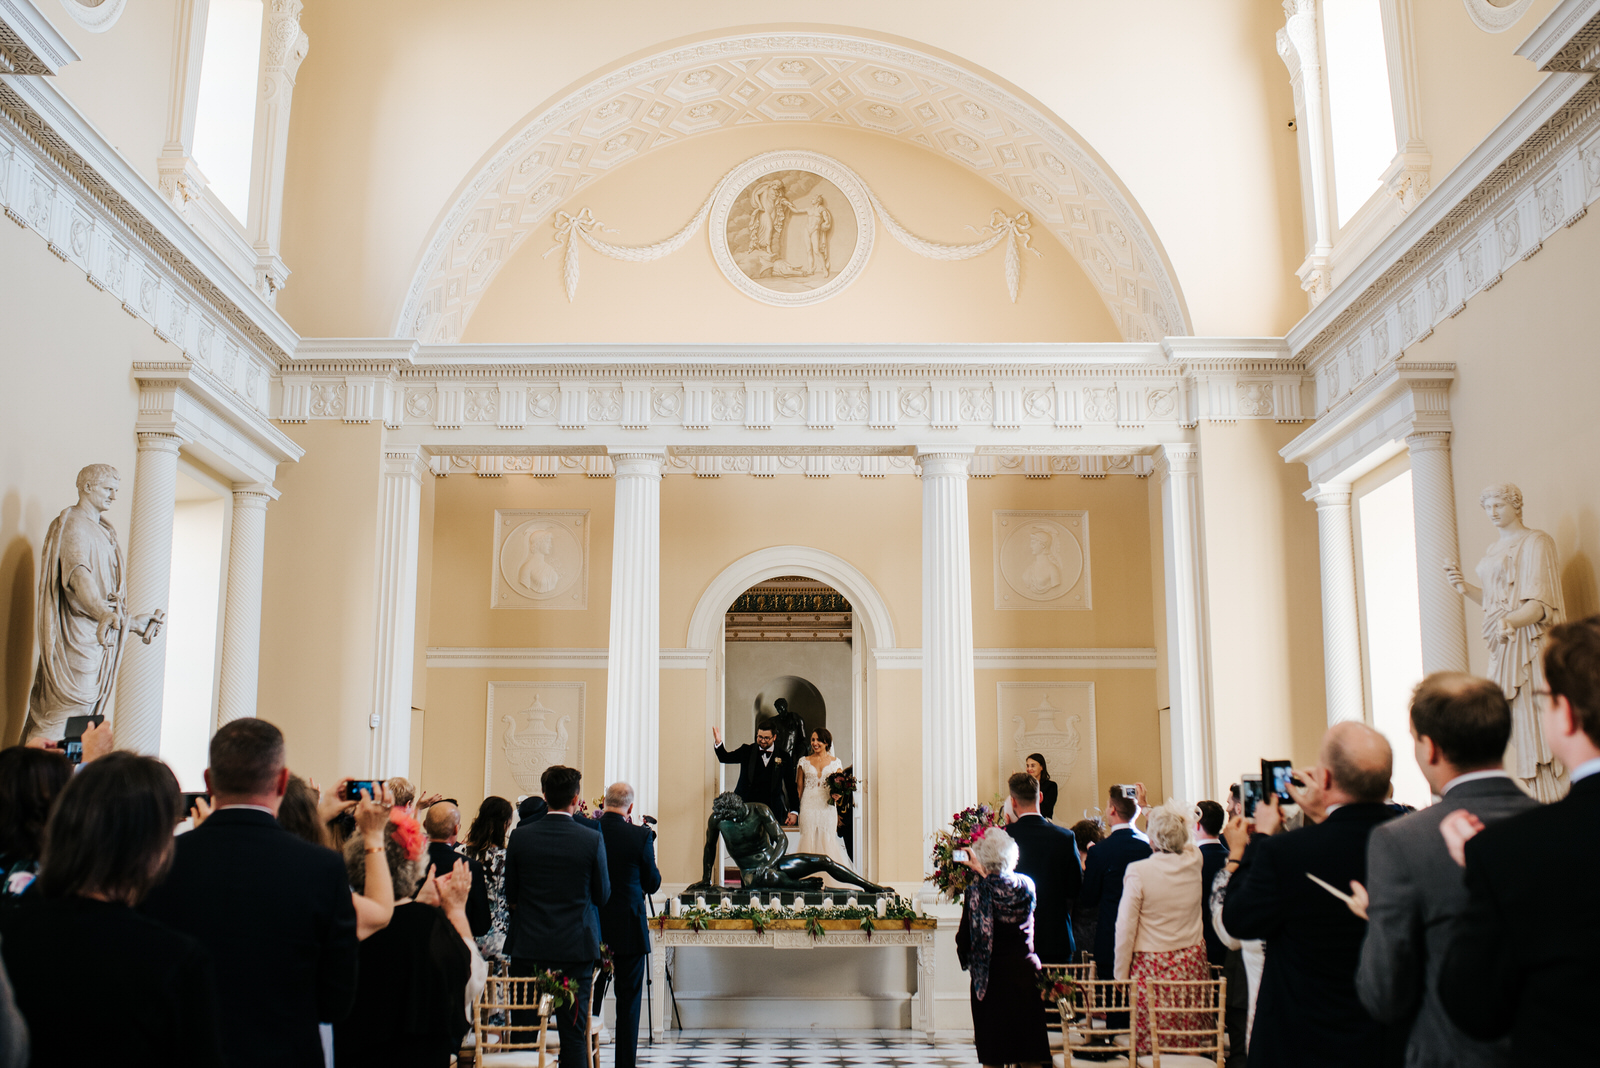 Bride and groom walk out of door flanked by stunning arches and statues as they are announced as husband and wife Syon House